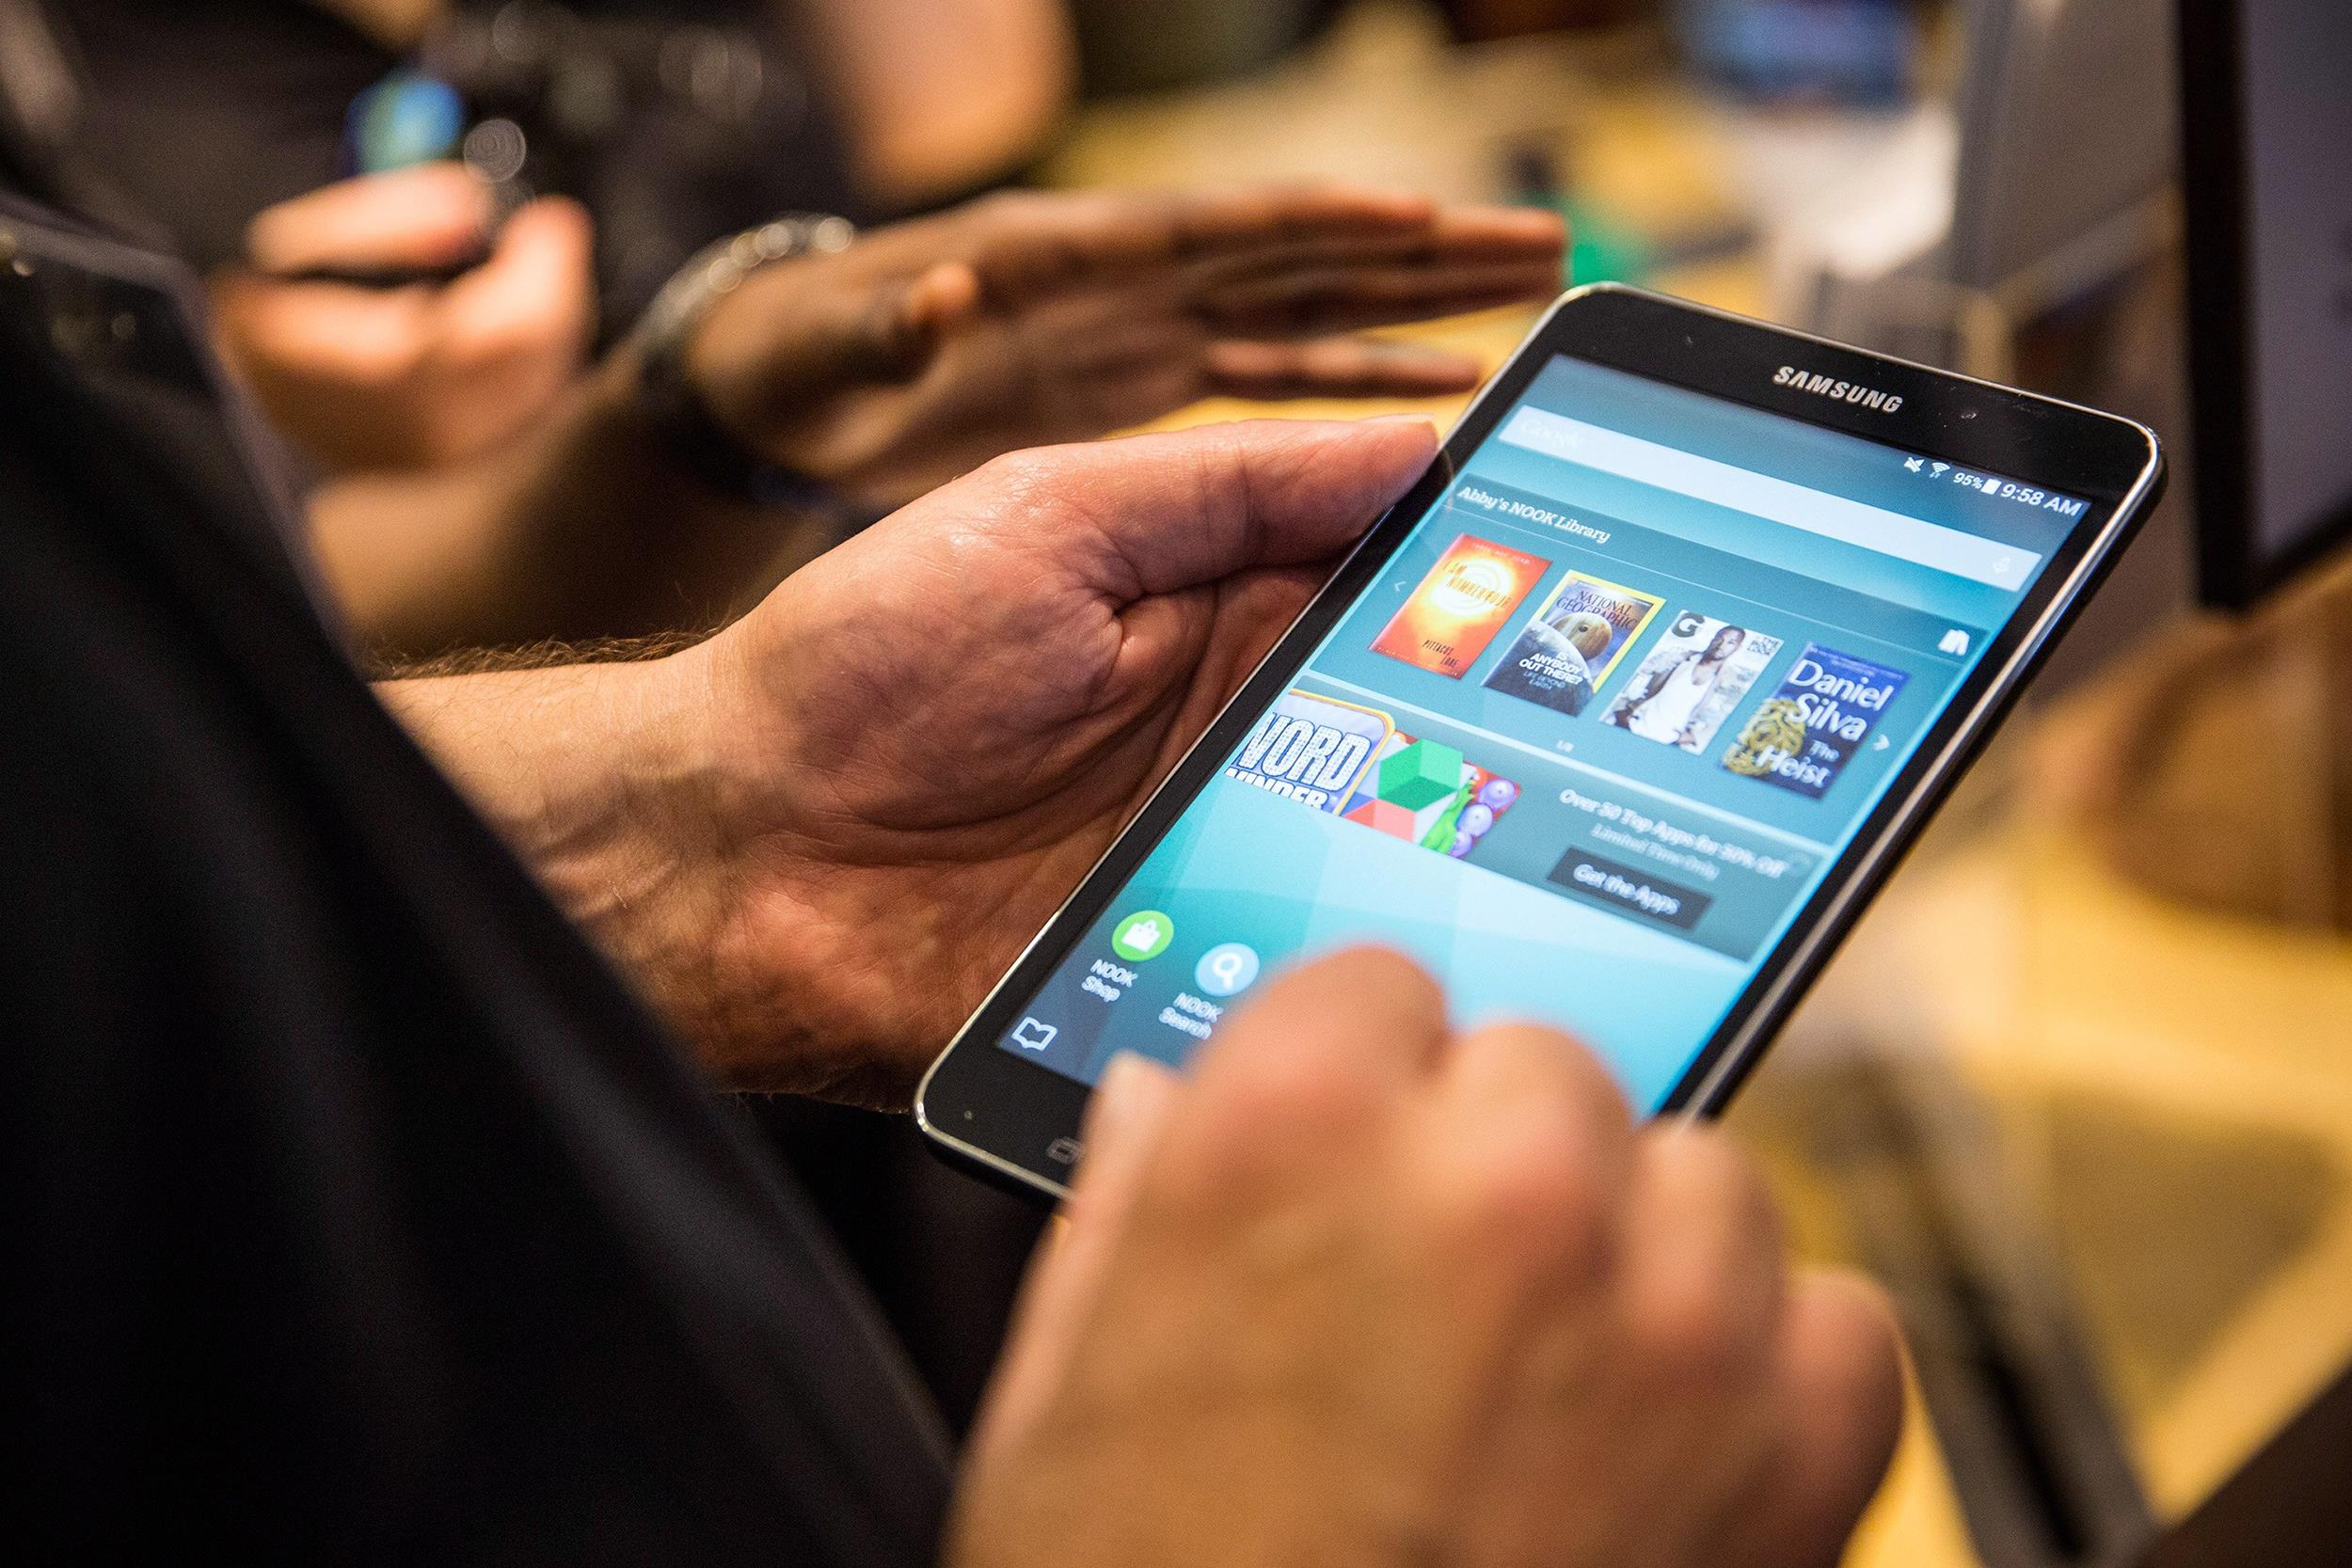 Image: Samsung and Barnes & Noble announce new joint device